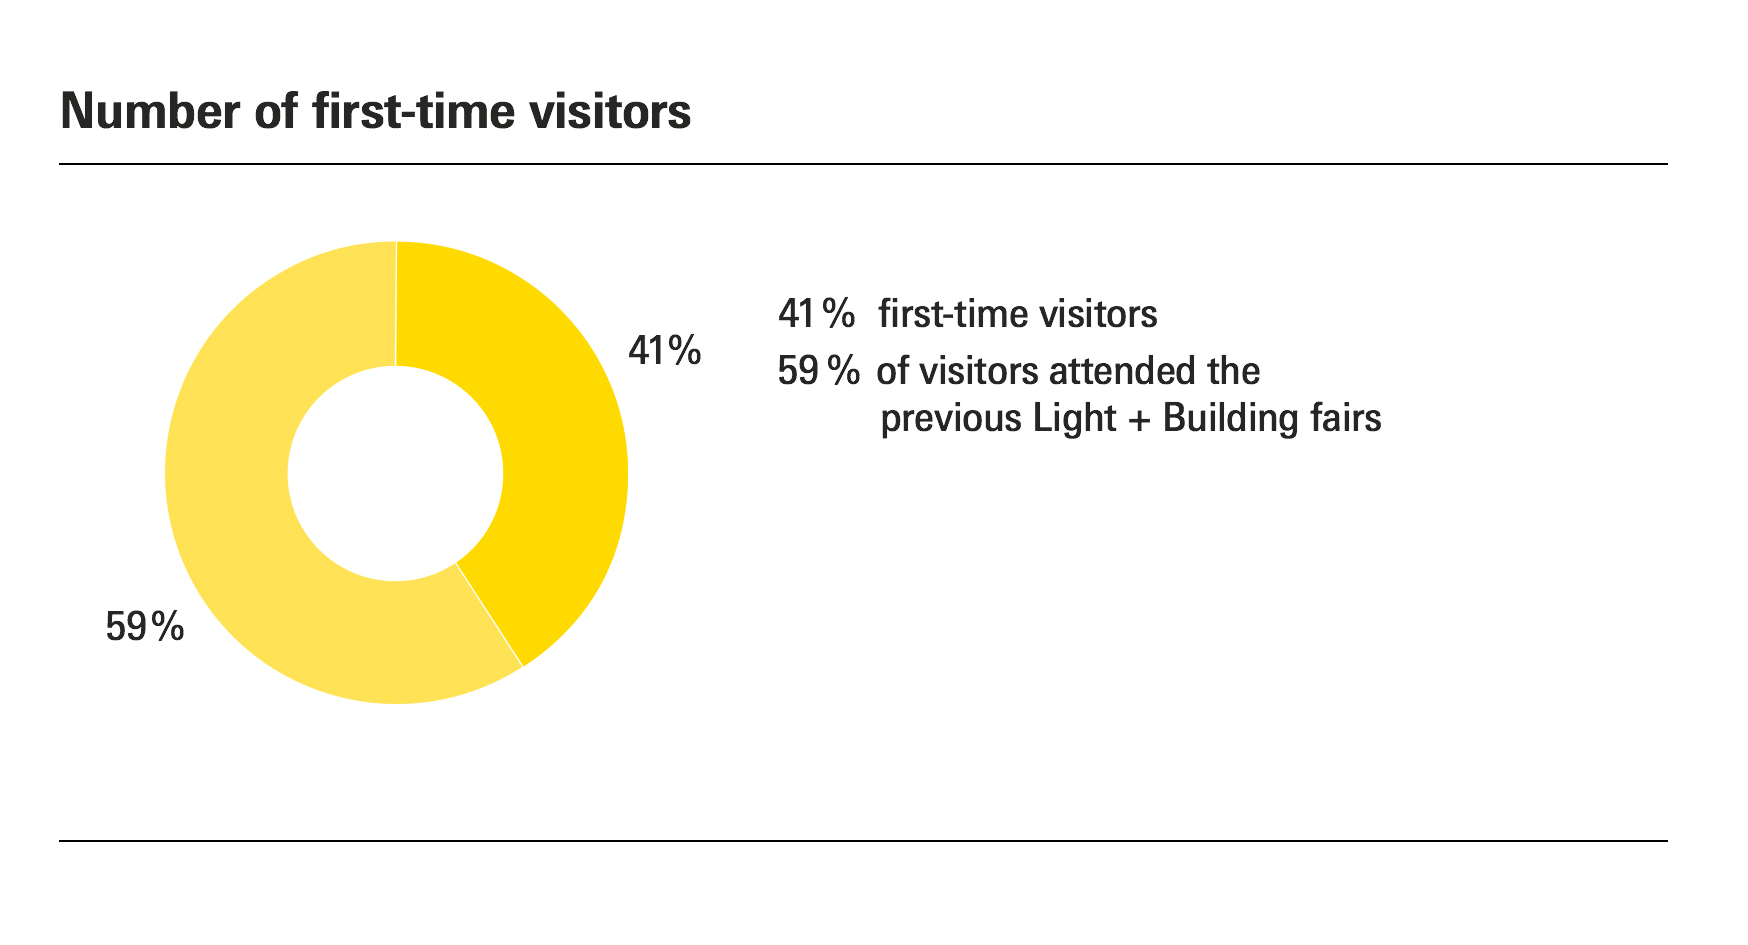 Number of first-time visitors